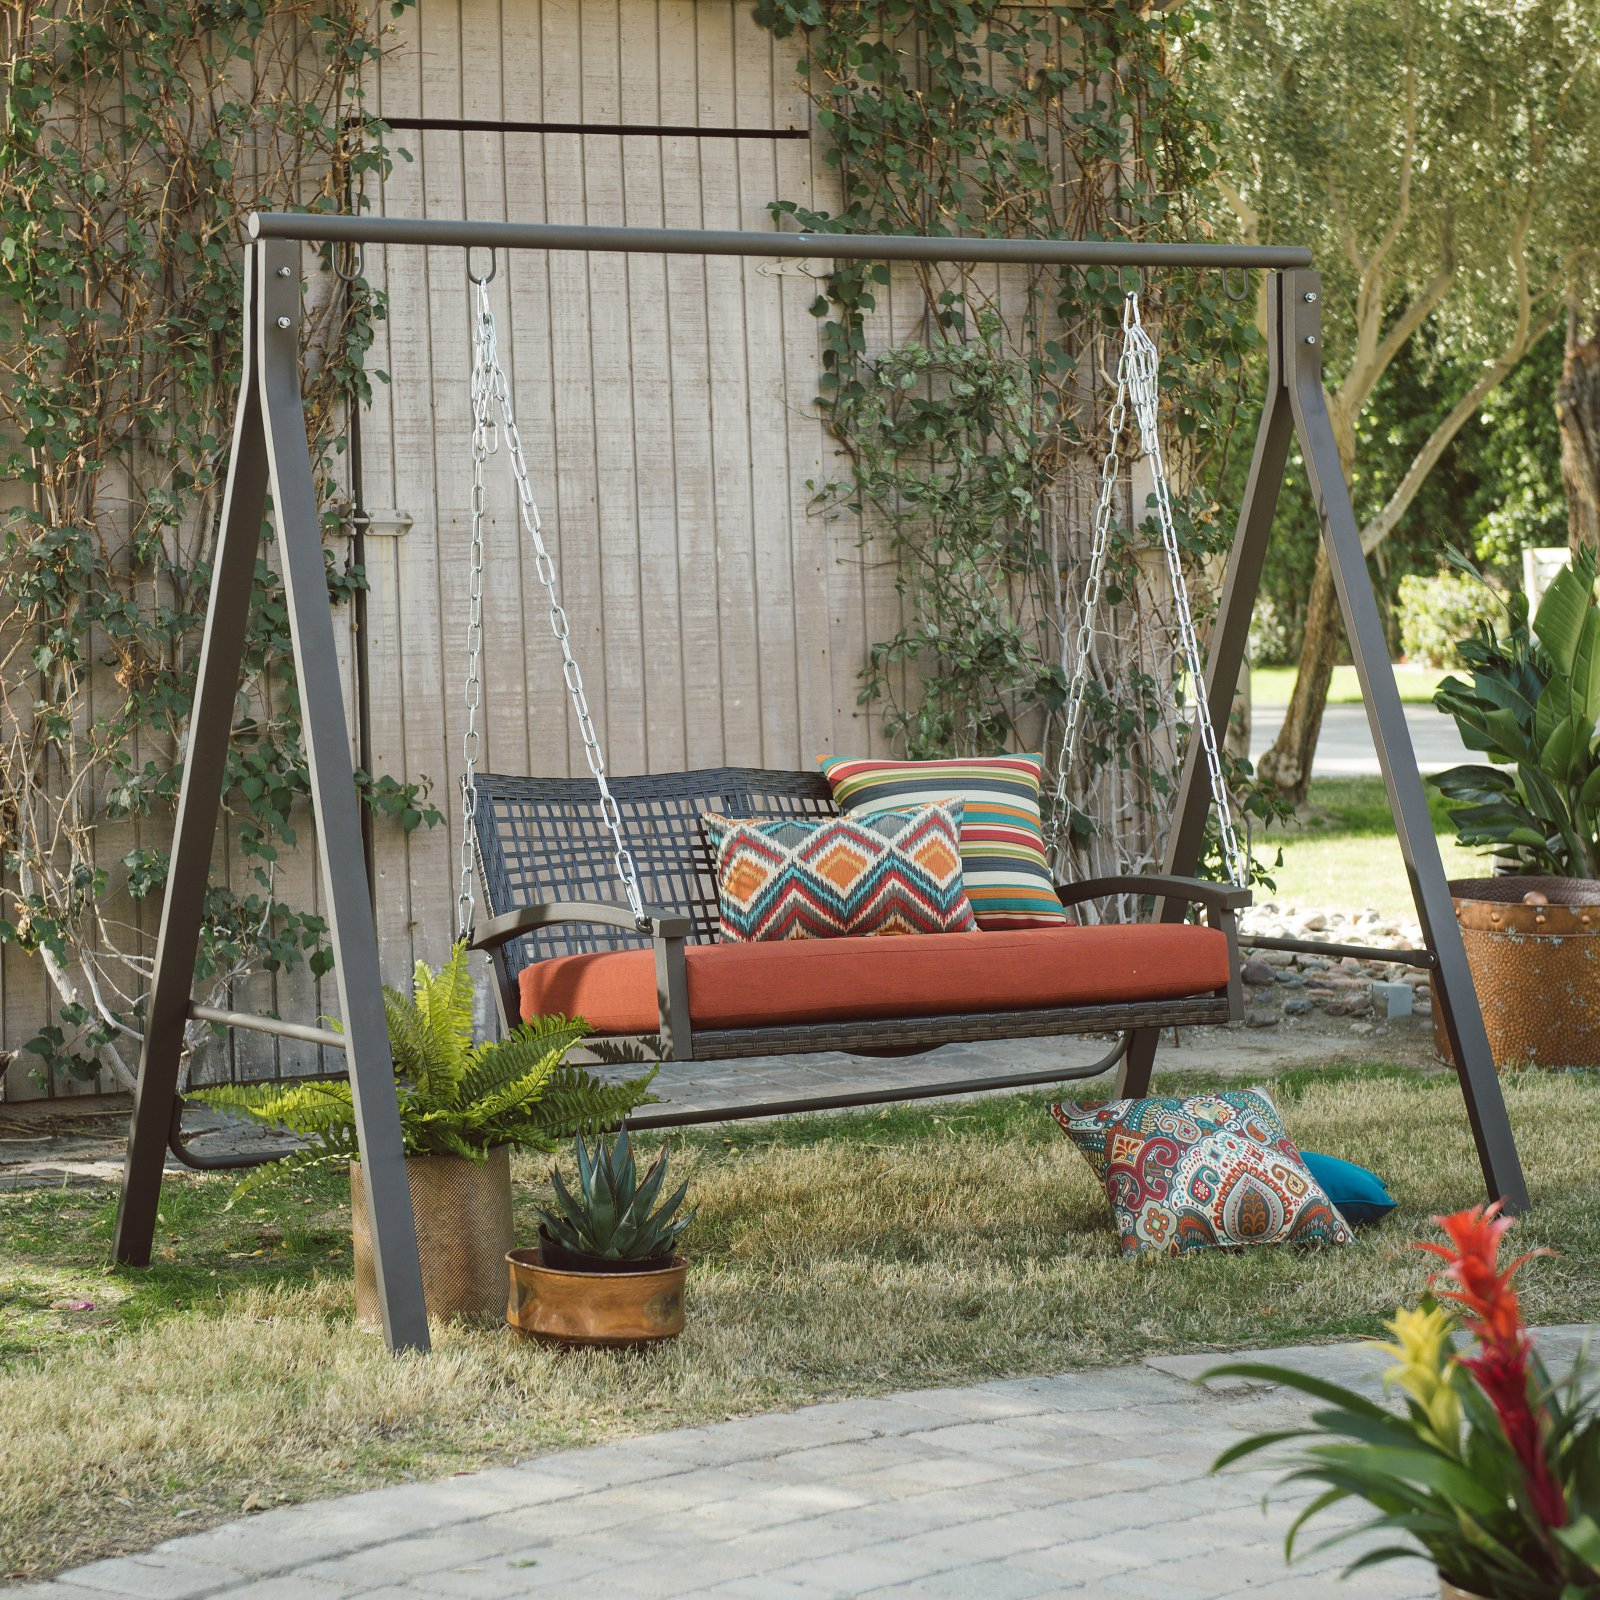 Trendy Belham Living Universal A Frame Metal Porch Swing Stand – Walmart For 2 Person Antique Black Iron Outdoor Swings (View 25 of 25)